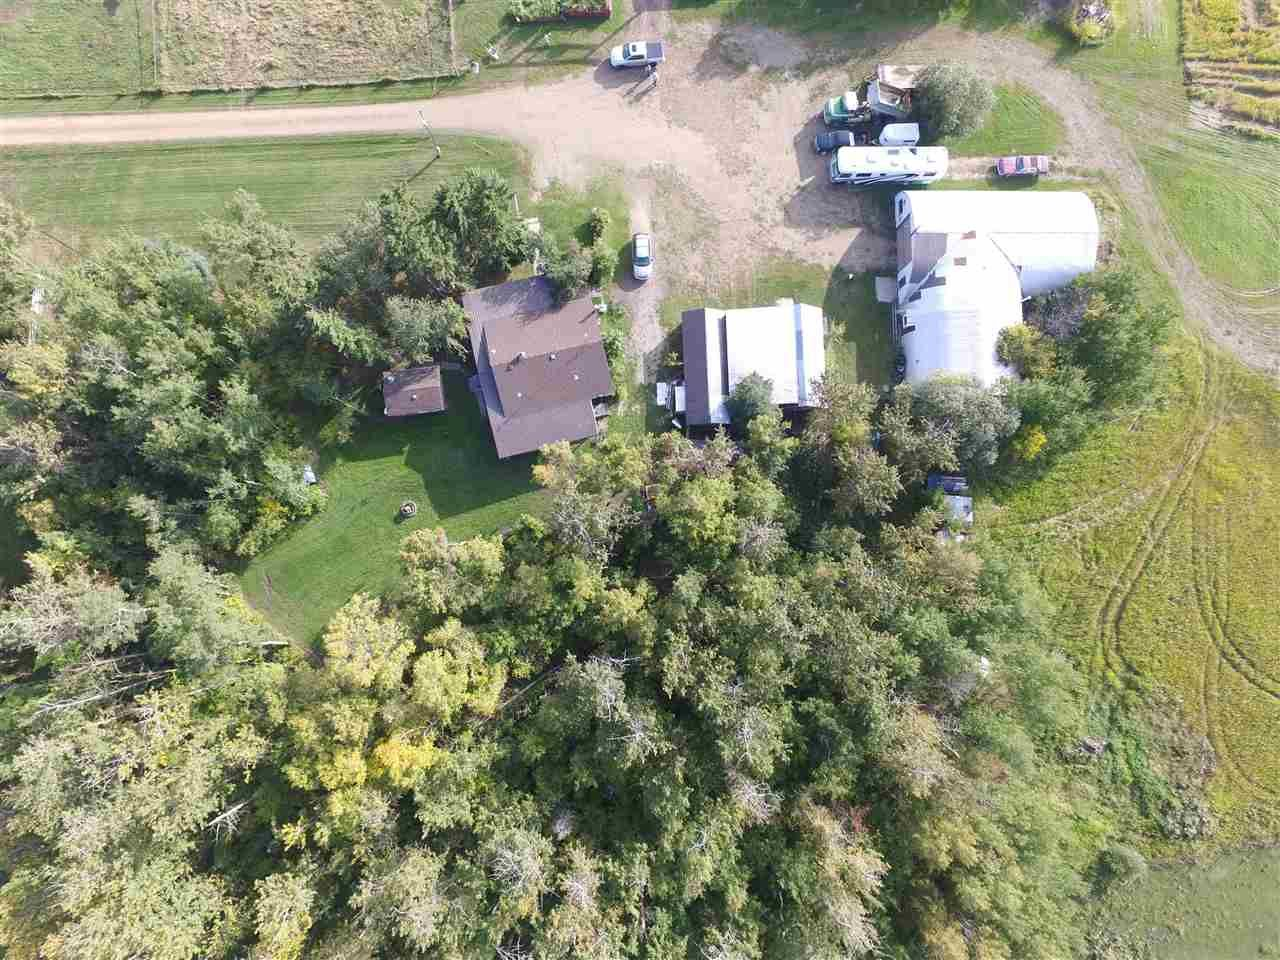 Photo 18: Photos: 472050A Hwy 814: Rural Wetaskiwin County House for sale : MLS®# E4213442